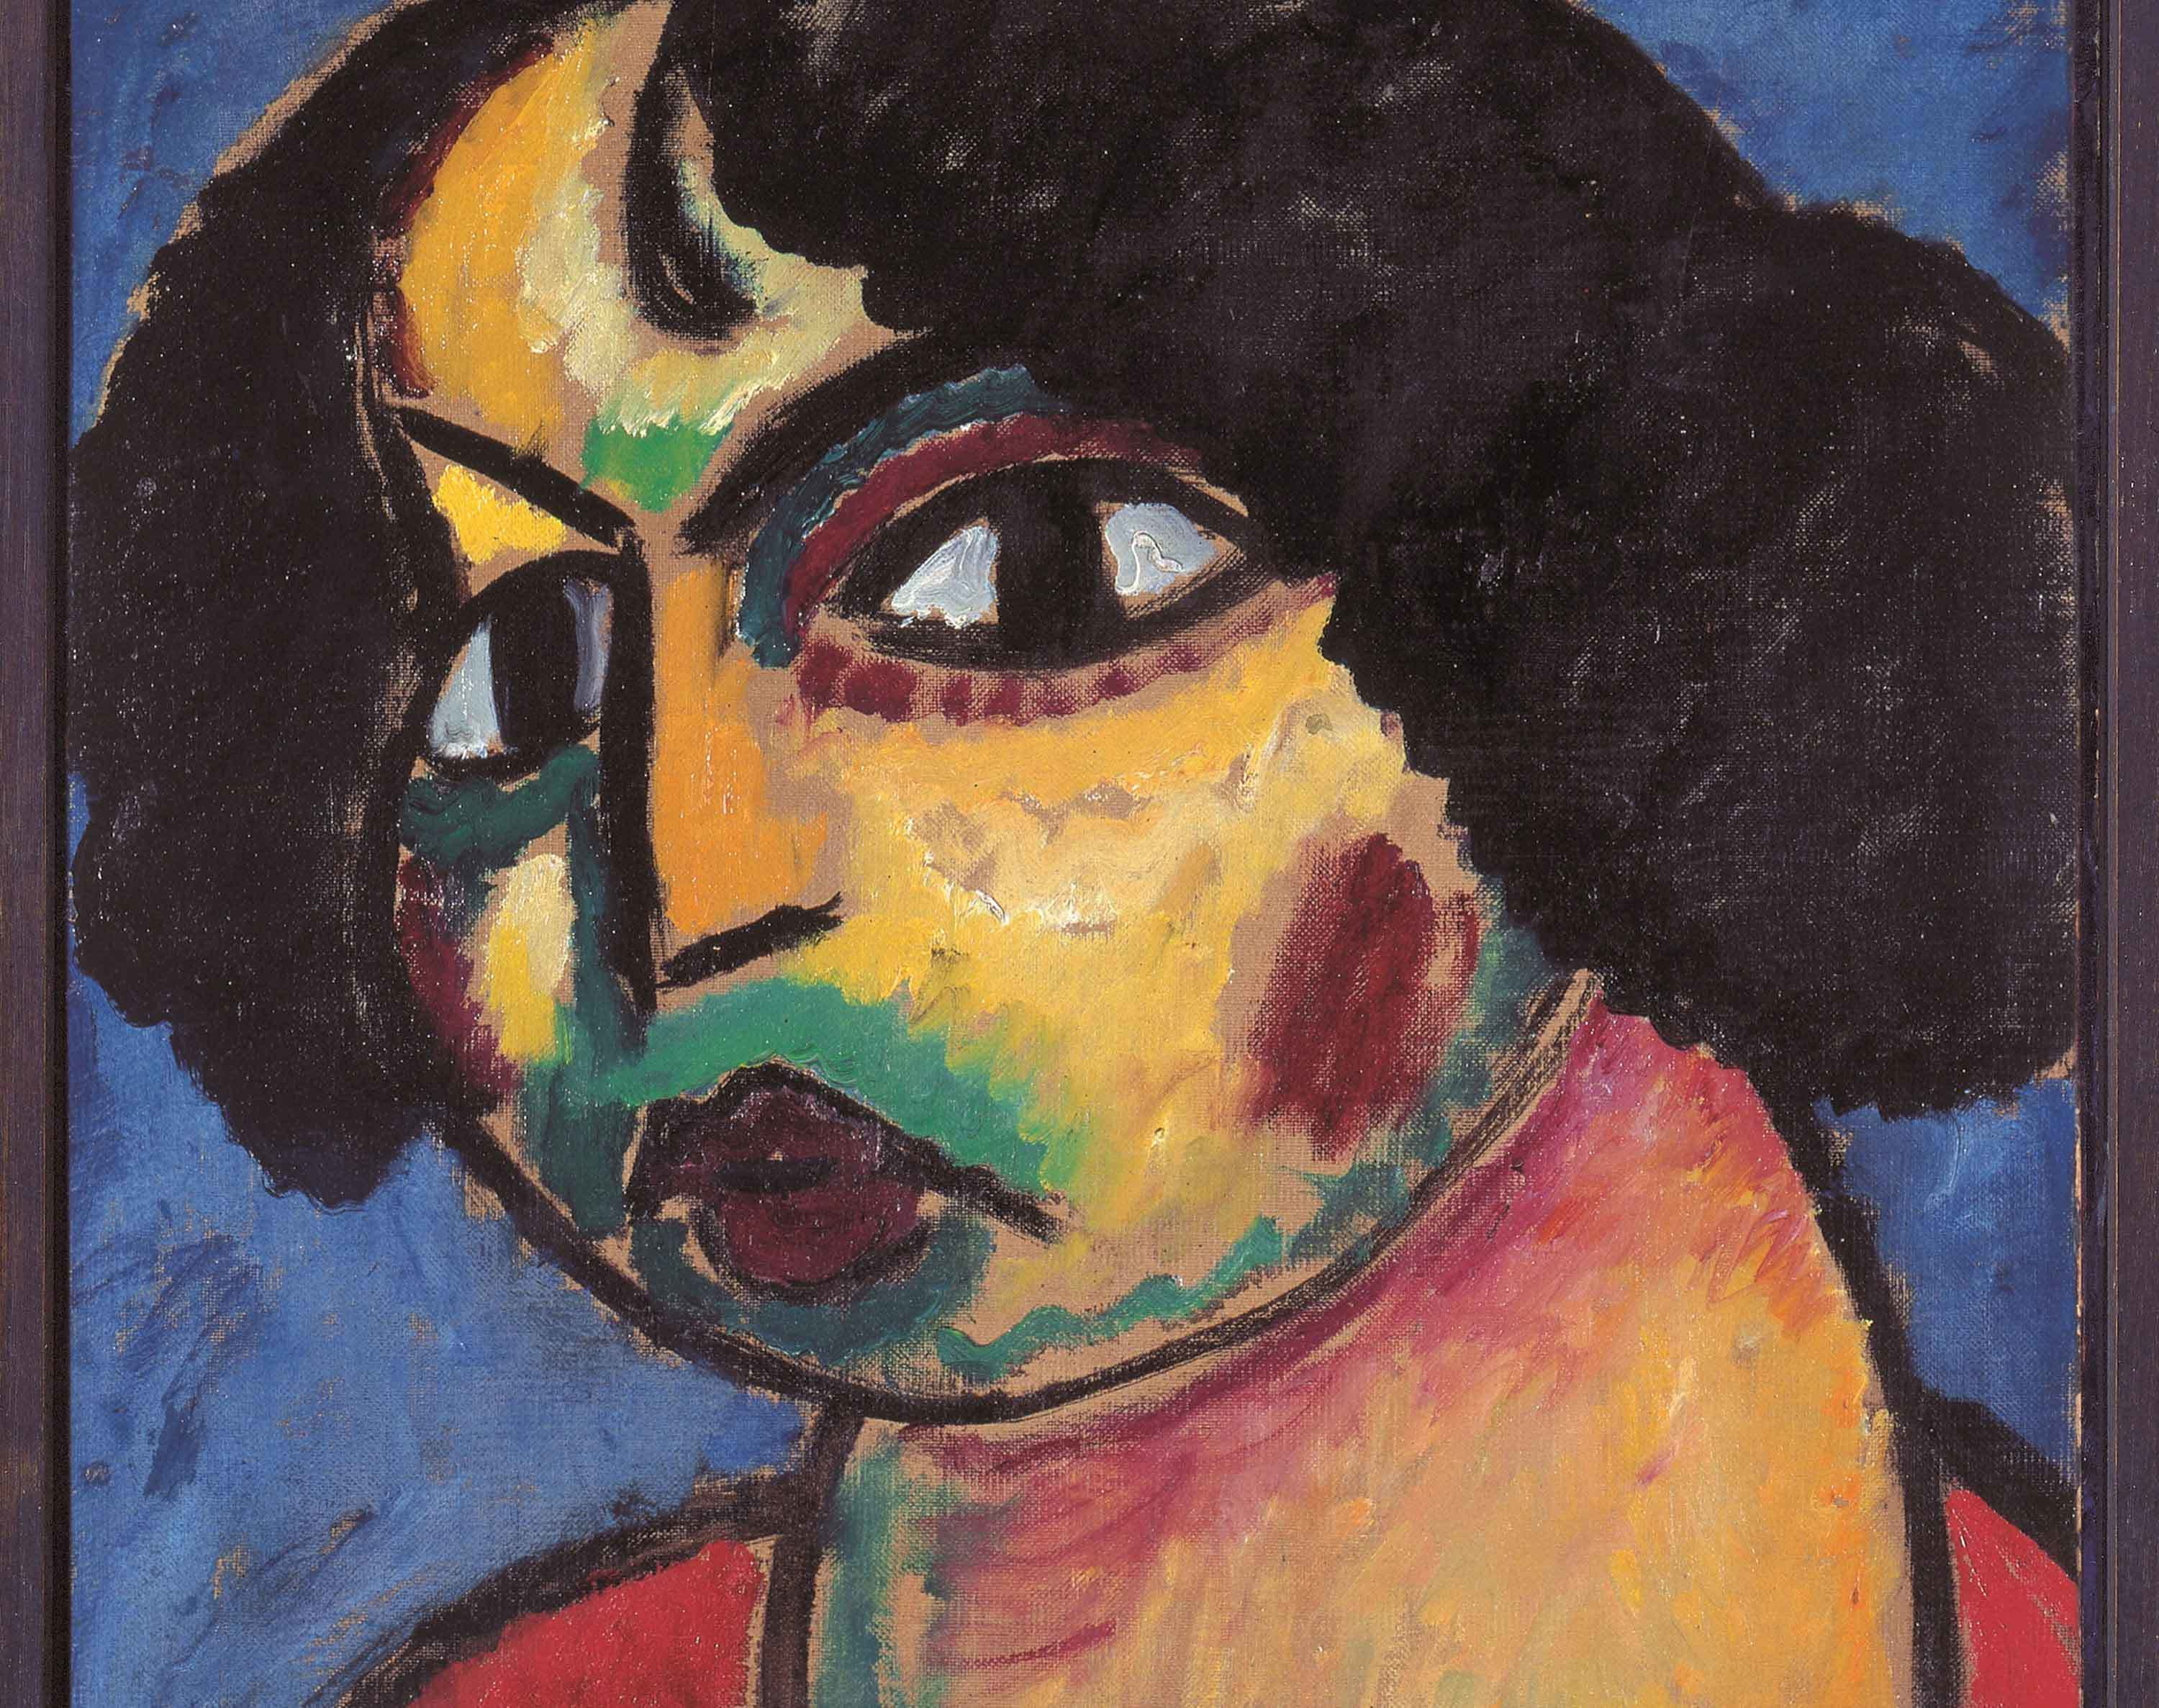 Chem Alexejvonjawlensky Messalina Minimum